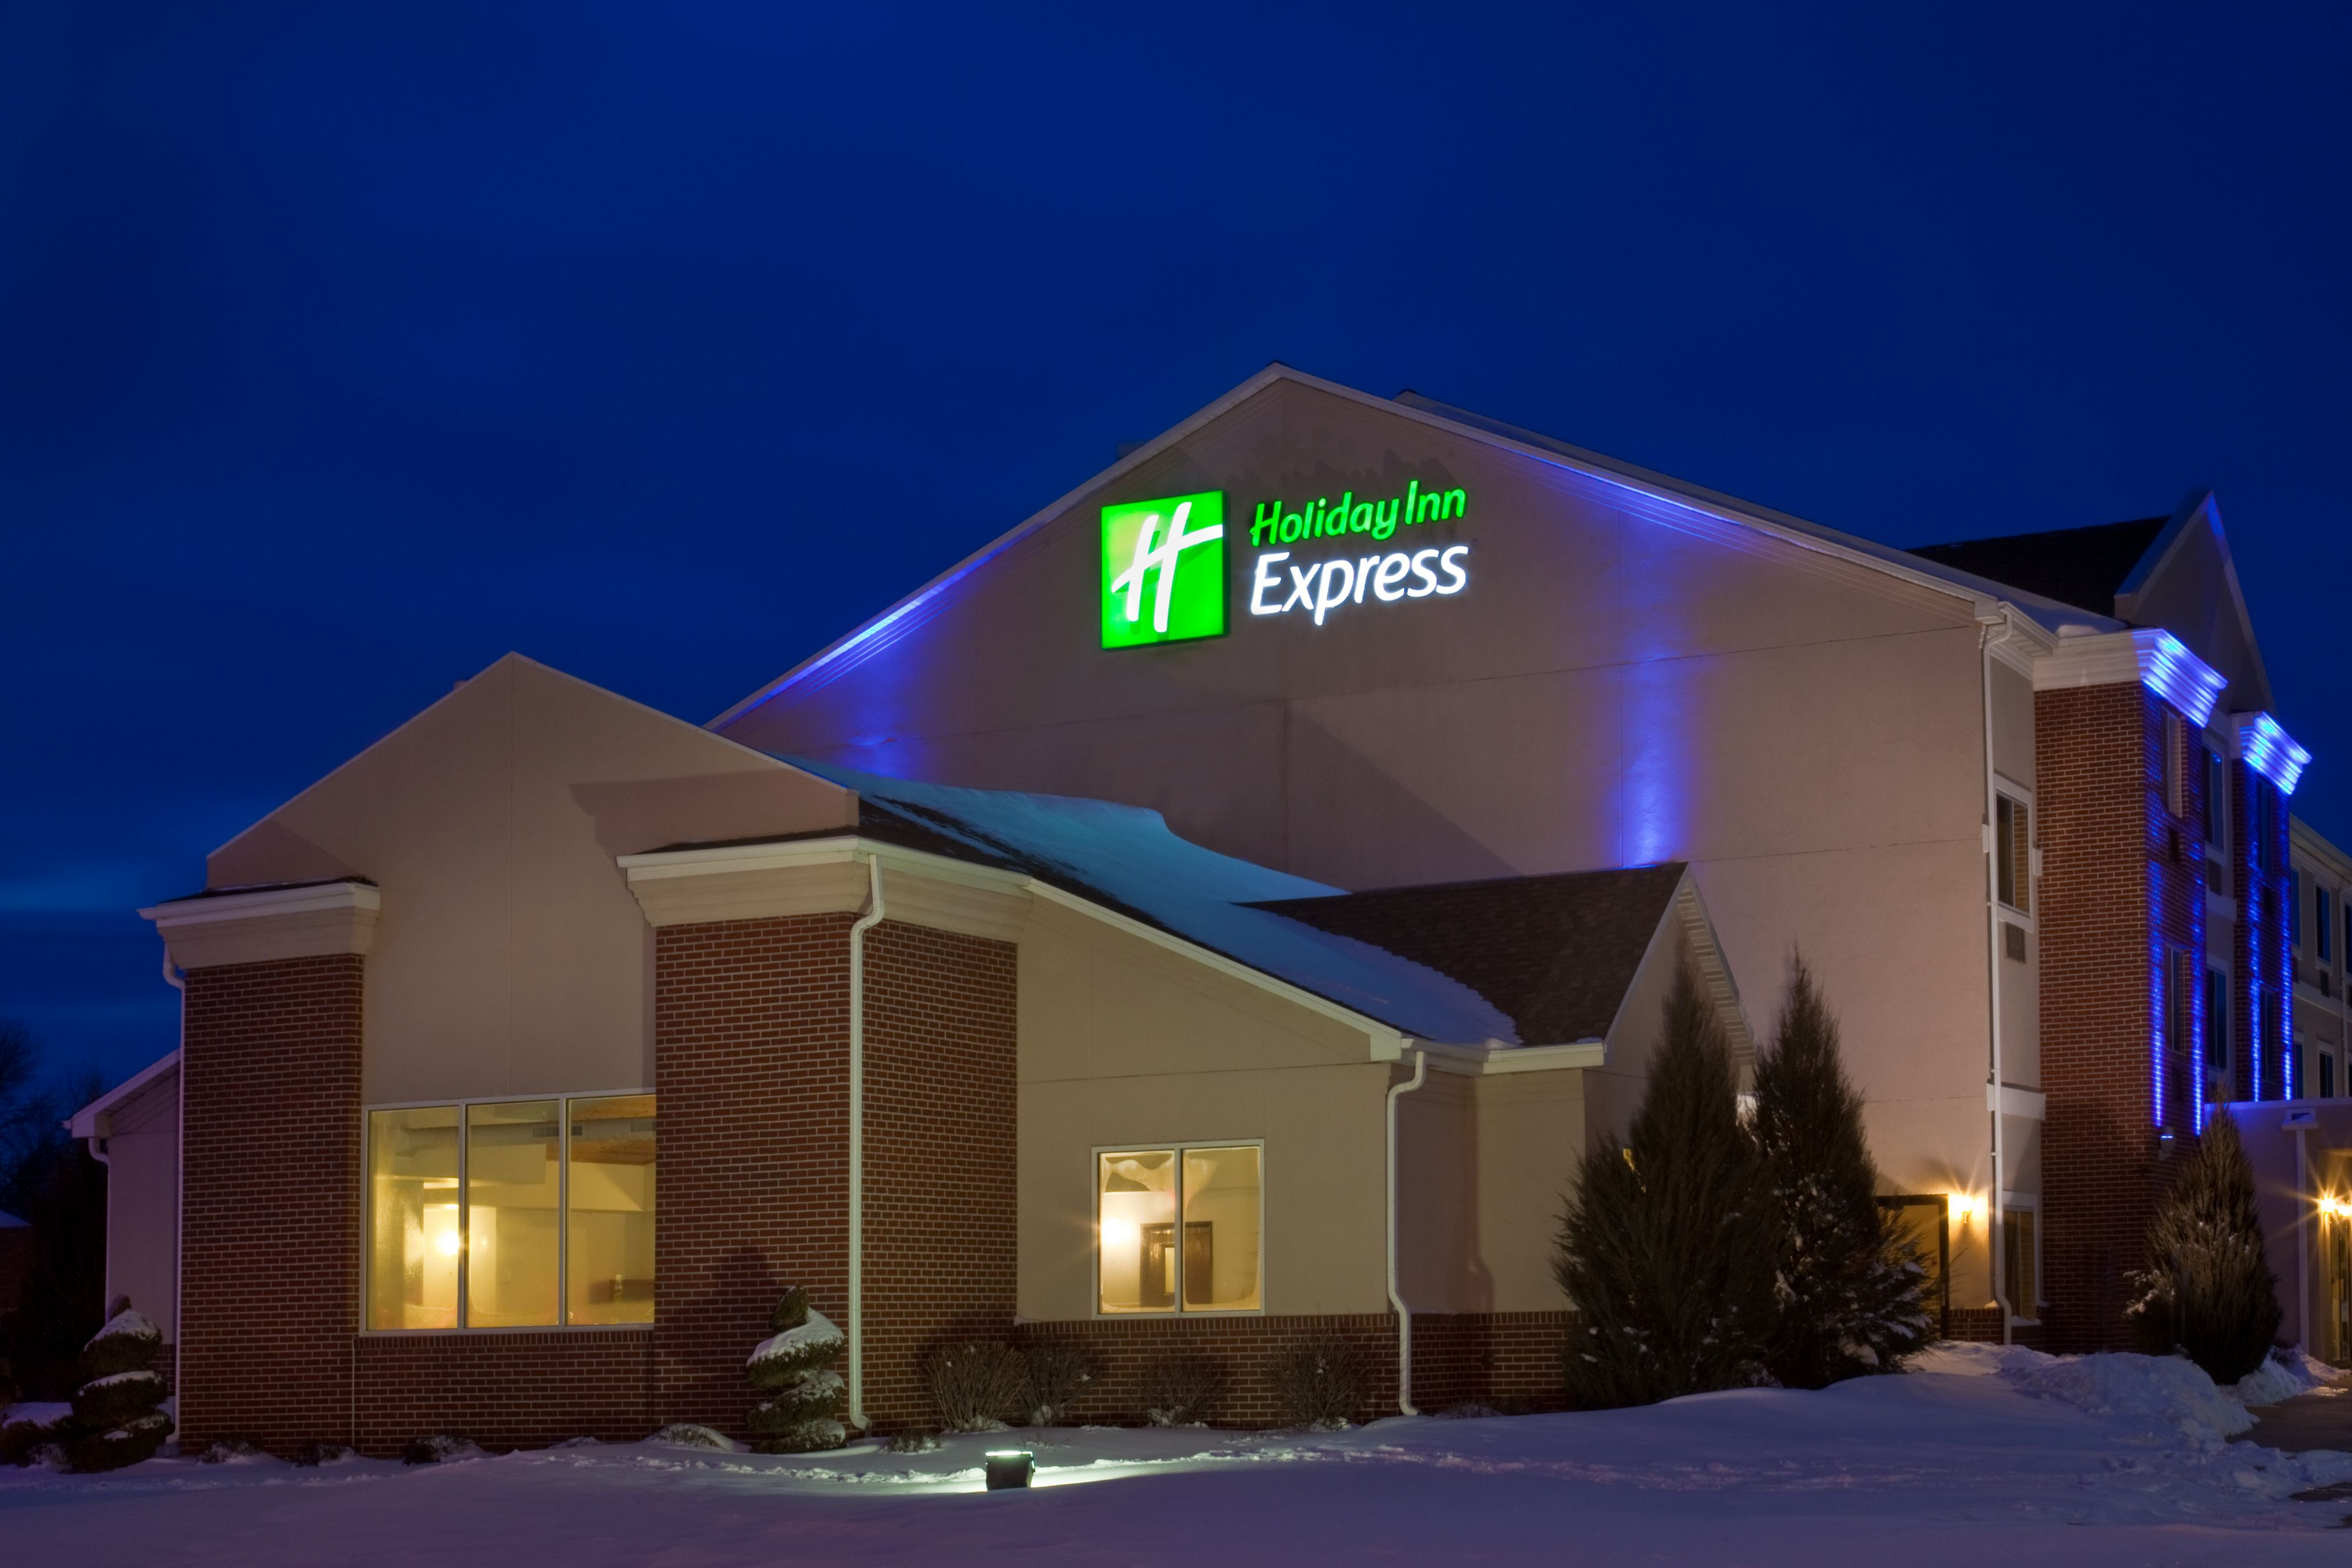 Holiday Inn Express Omaha West - 90th Street image 3